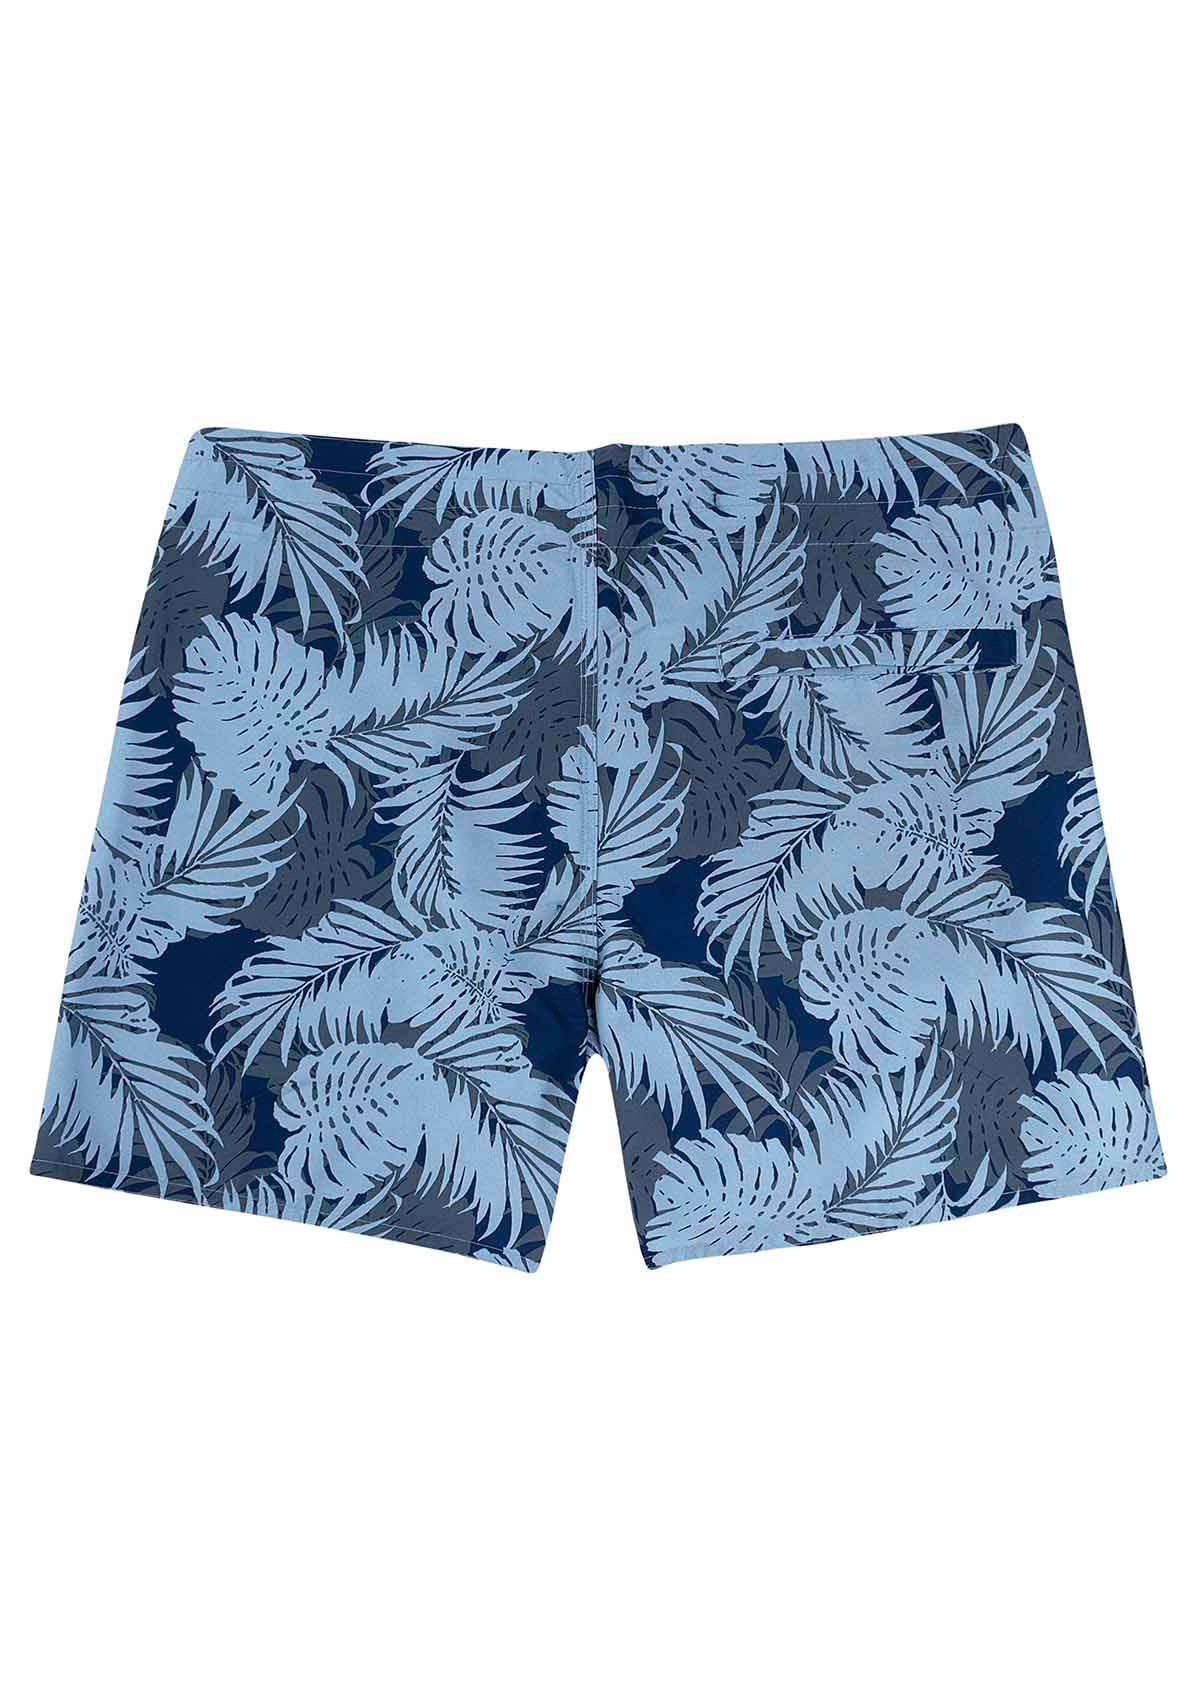 Shorts Curto Masculino Floral